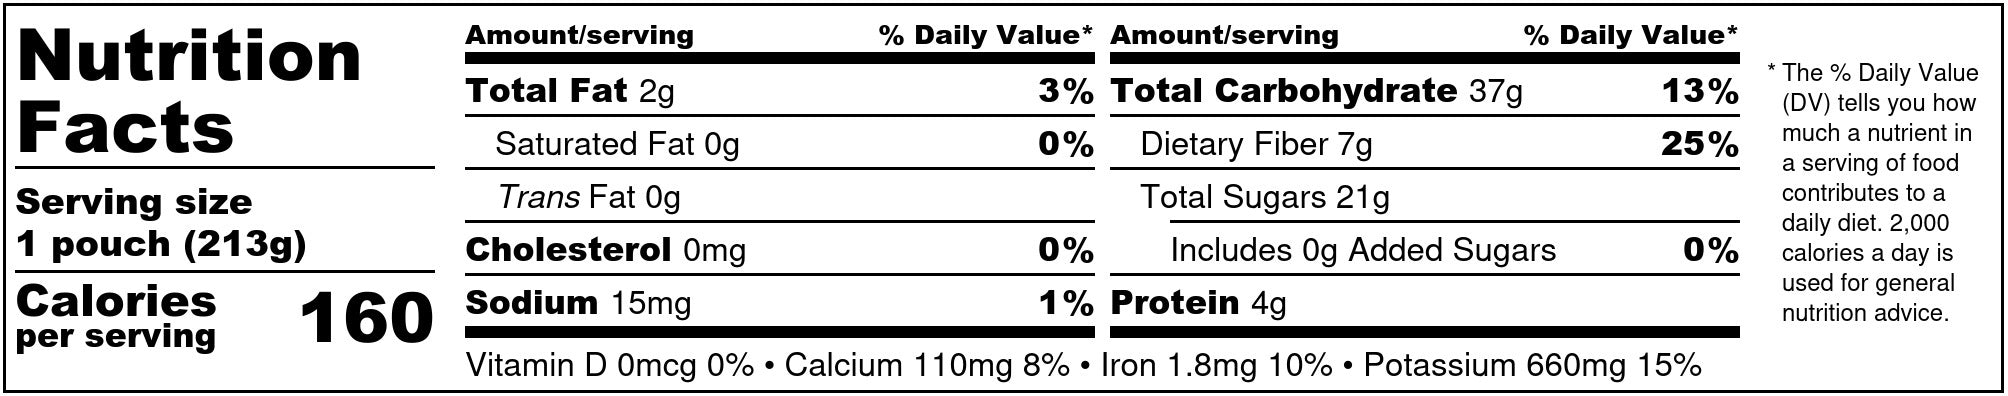 Frozen Garden Berry-Nana-Rama Nutrition Facts